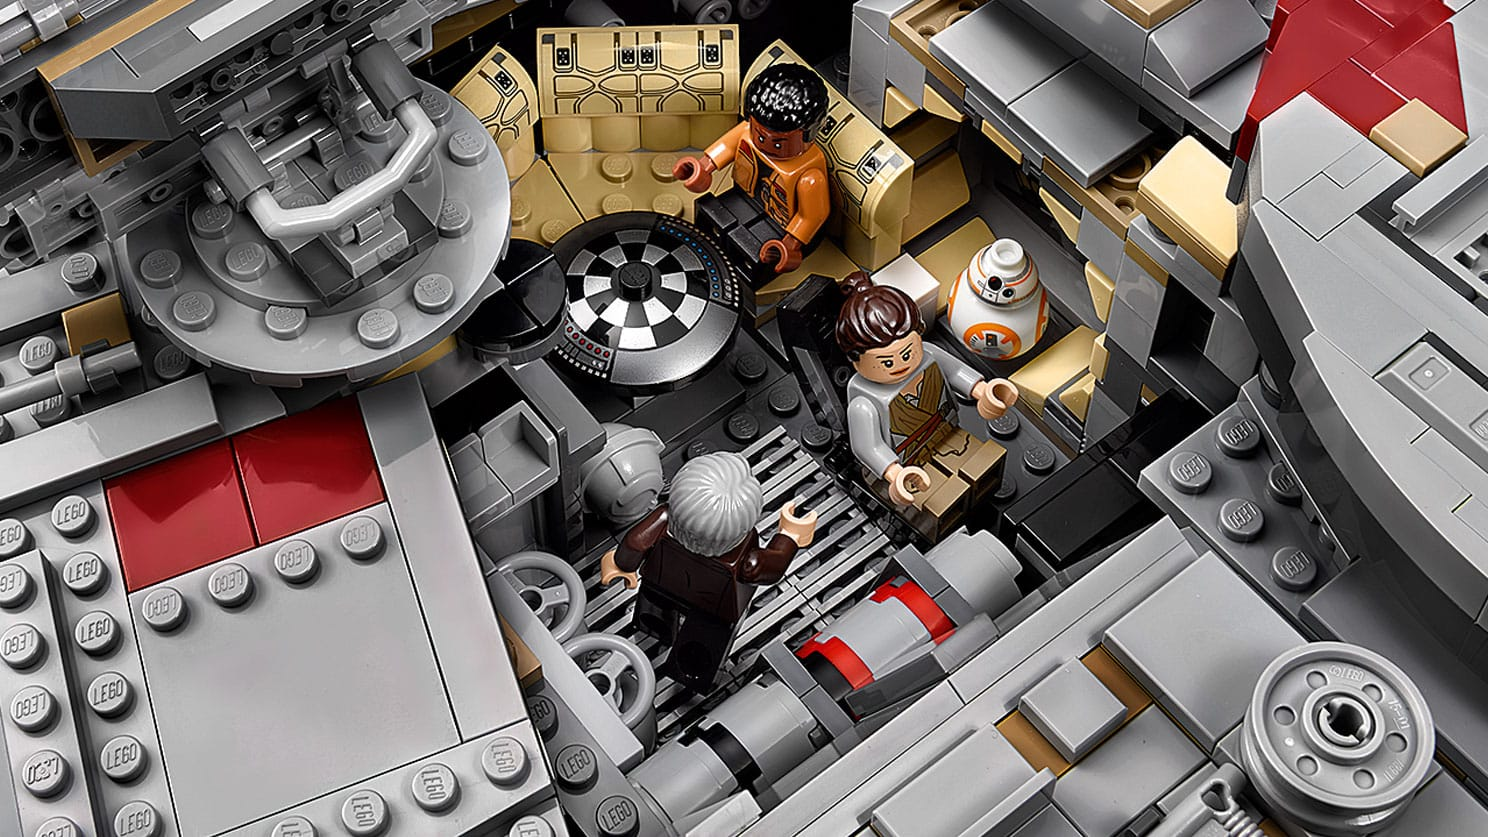 lego 75192 ultimate collector series millennium falcon. Black Bedroom Furniture Sets. Home Design Ideas